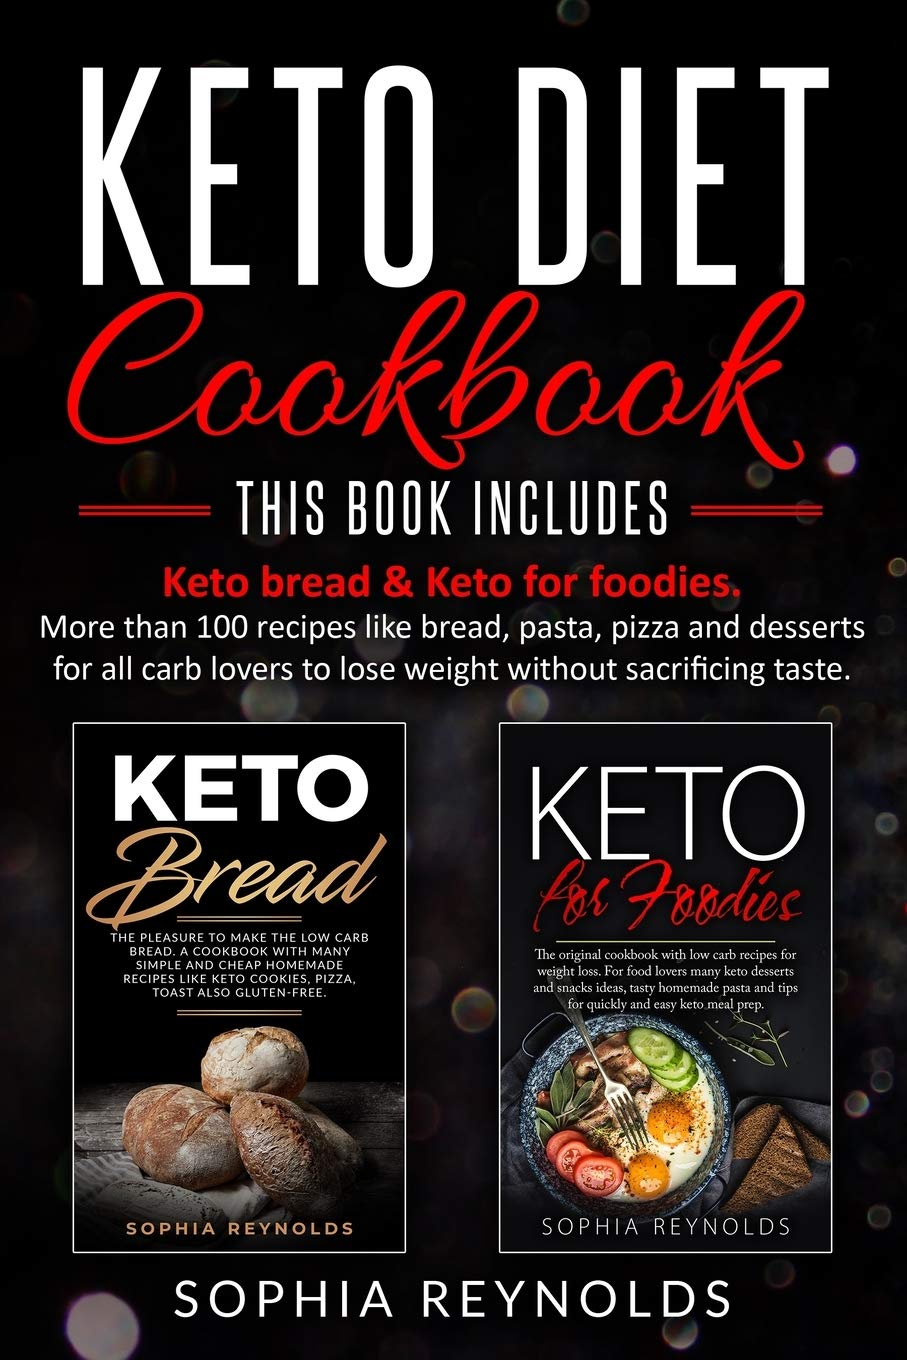 Image OfKeto Diet Cookbook: 2 Manuscripts - Keto Bread & Keto For Foodies. More Than 100 Recipes Like Bread, Pasta, Pizza And Dess...